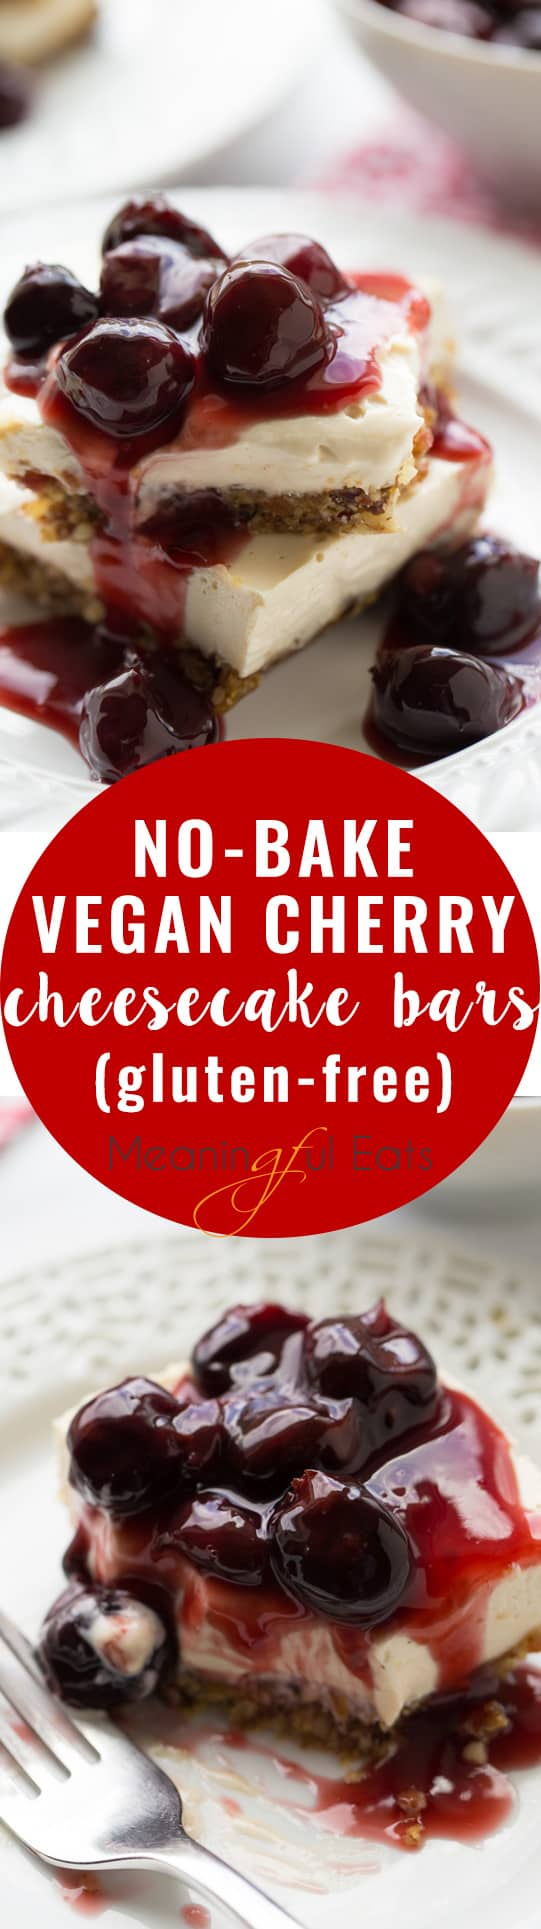 No-Bake Vegan Cherry Cheesecake Bars! So delicious you'd never guess they are dairy free! (Gluten-Free)